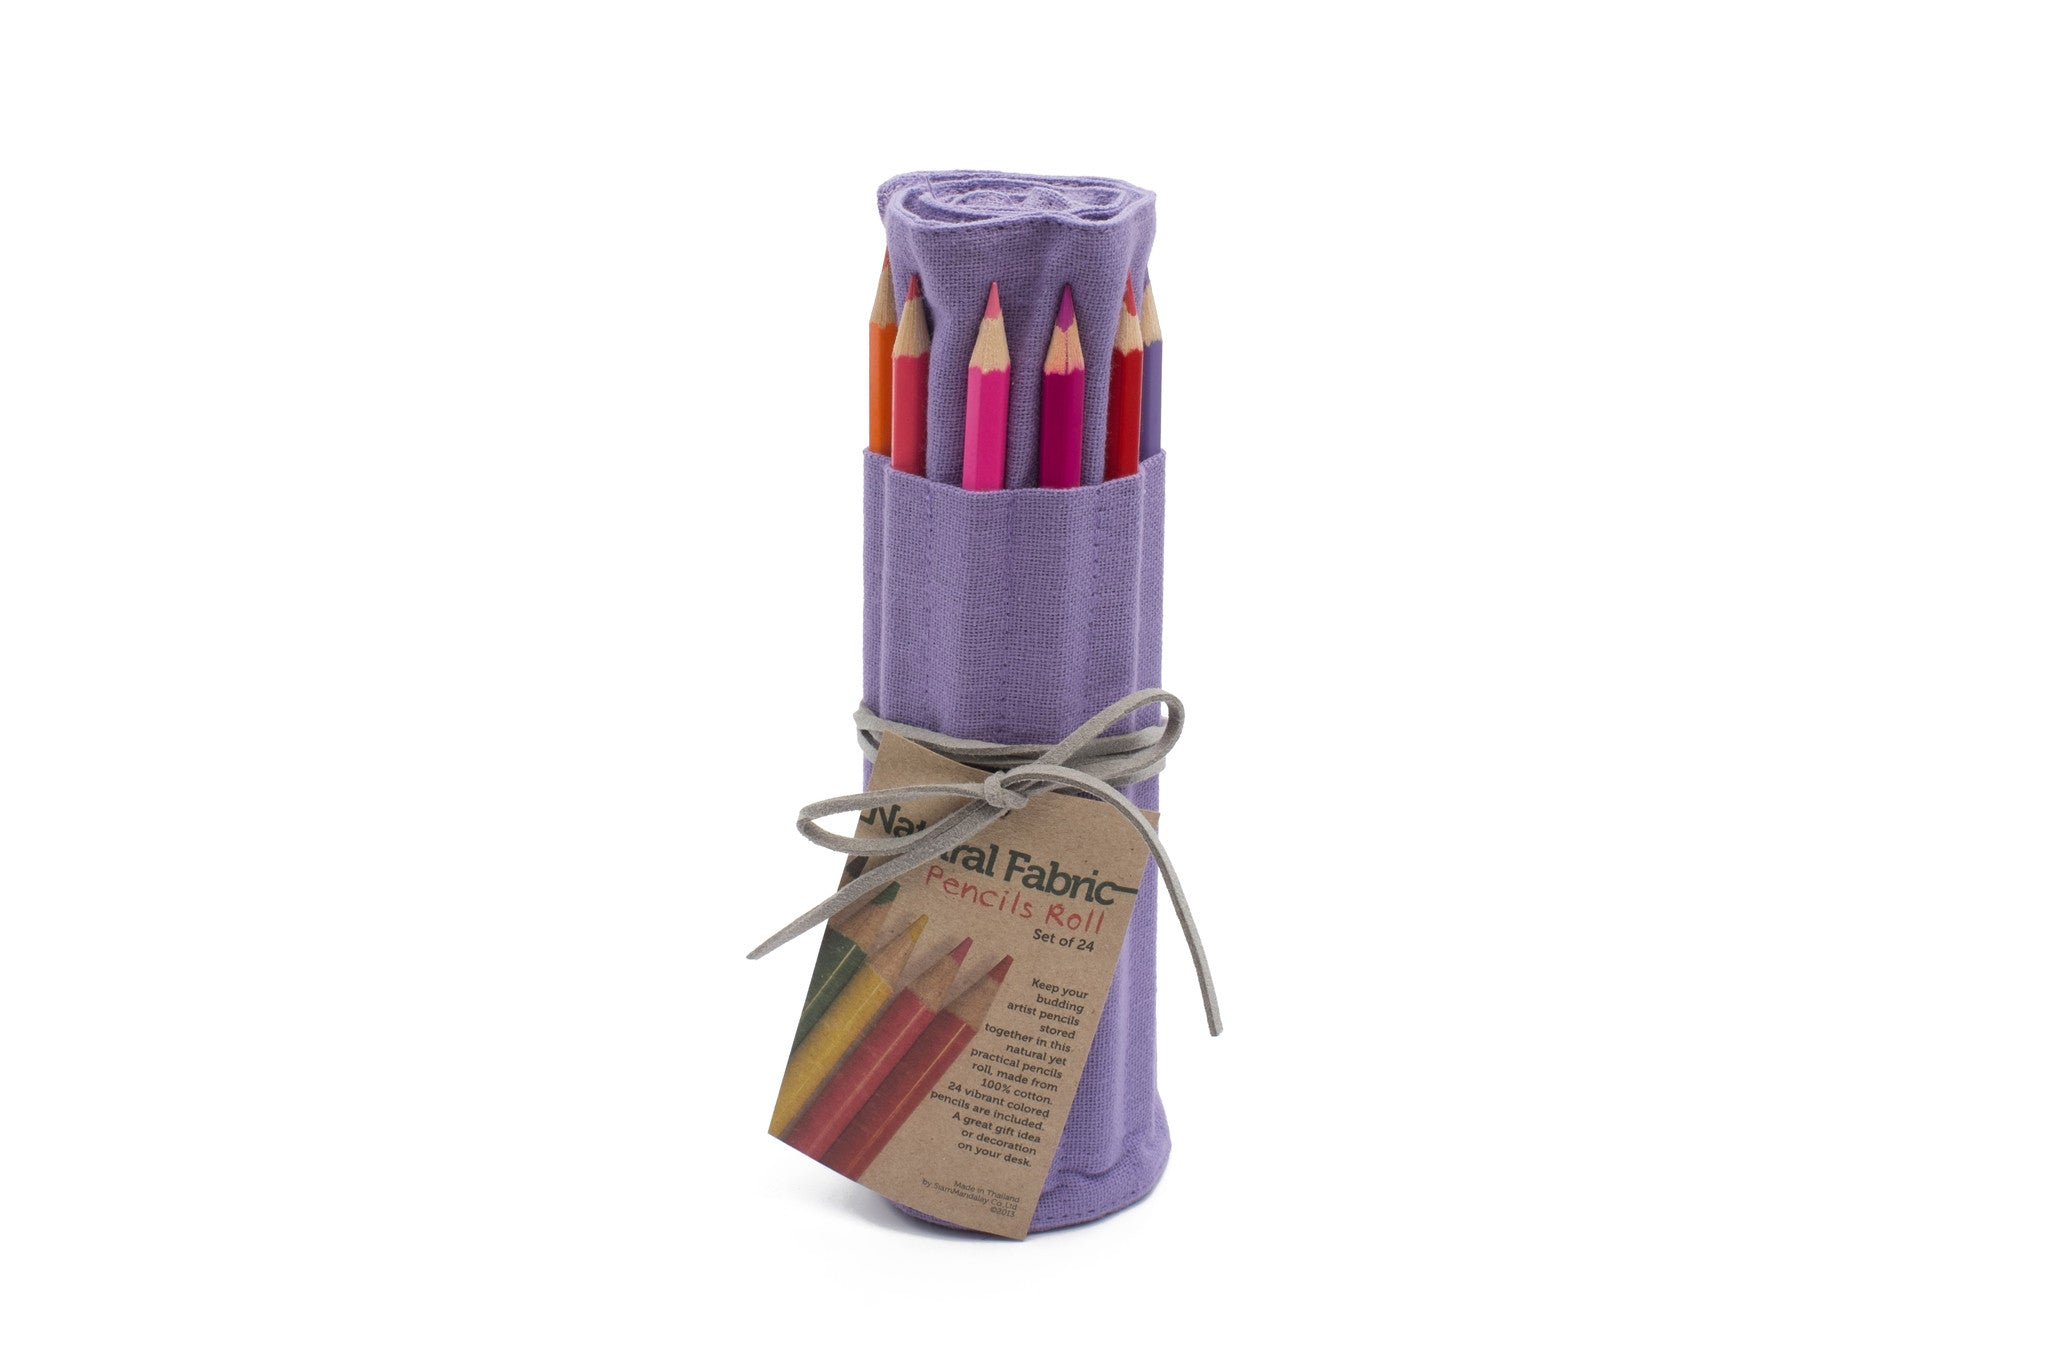 24 Colored Pencil - Vibrant Purple Fabric Roll Up